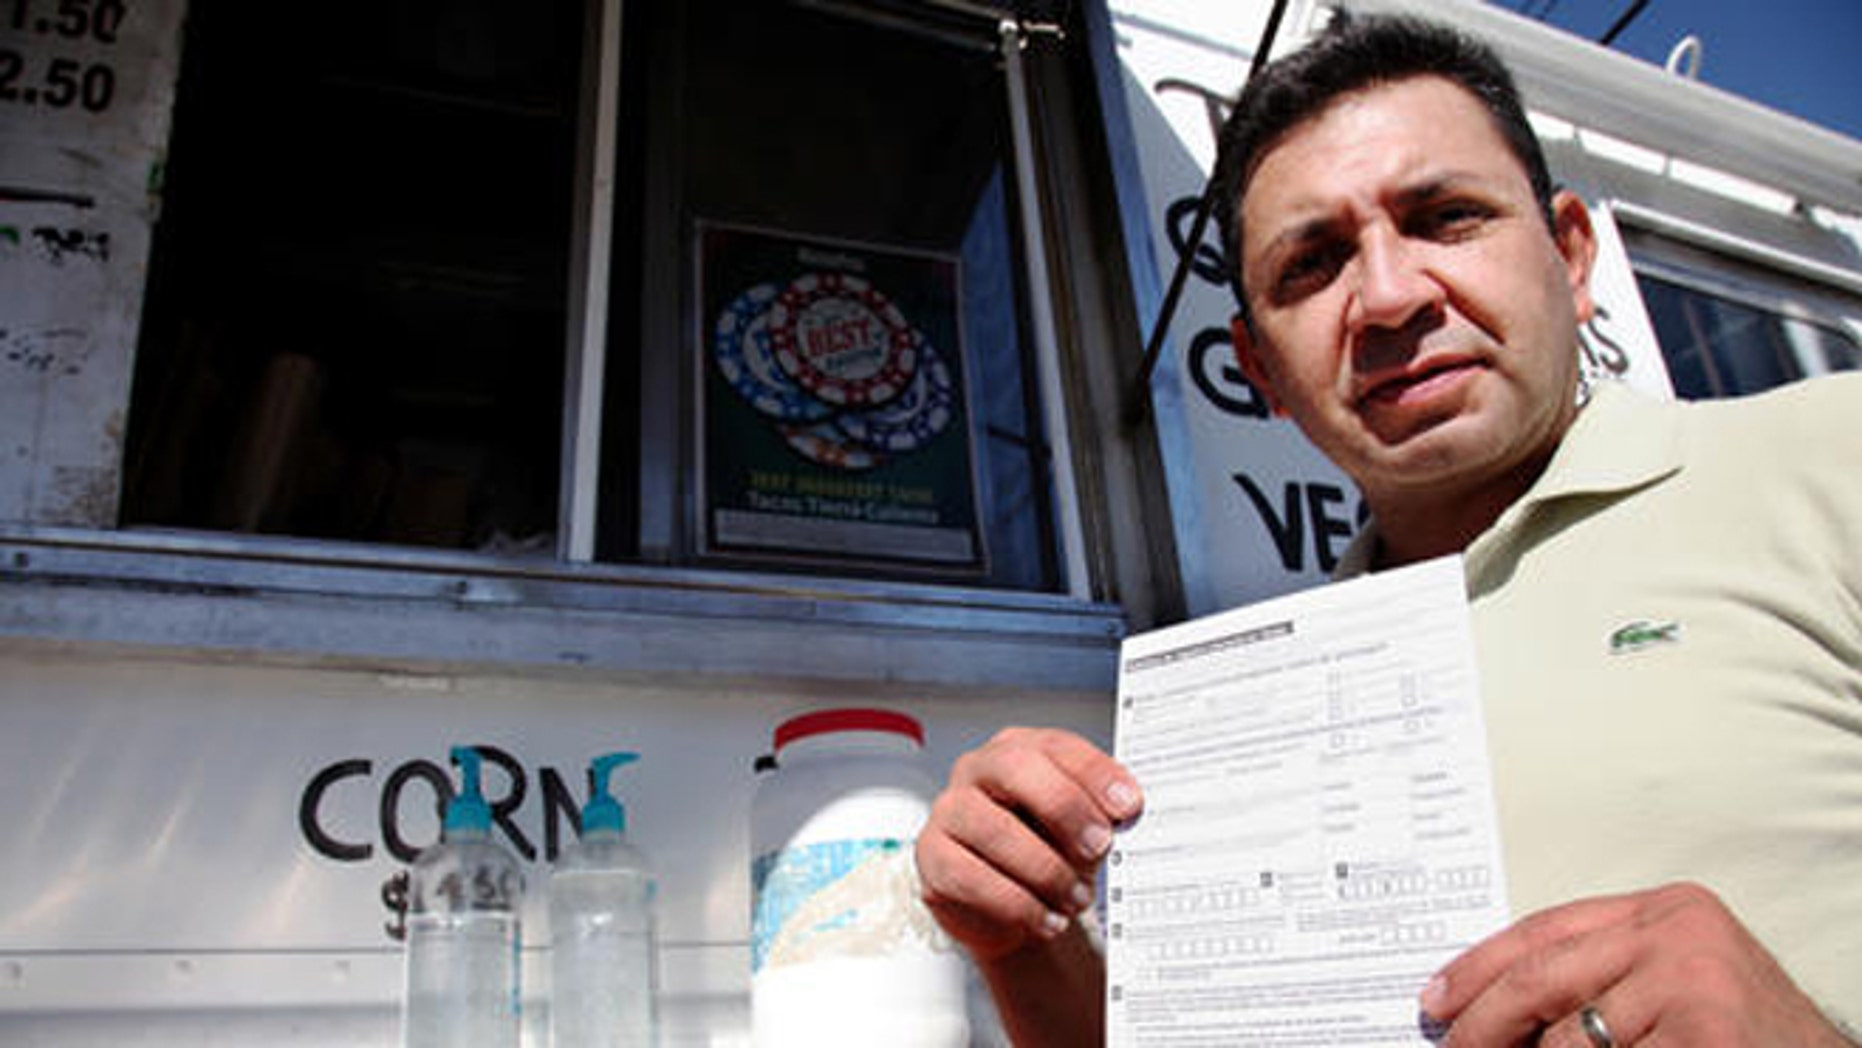 """Carlos Zamora shows a voter registration card from a pile placed on the counter of the Tierra Caliente taco truck on Thursday, Sept. 29, 2016, in Houston. Zamora is with Mi Familia Vota, a Latino activist group that seeks to register more voters in the Latino community. Mi Familia Vota partnered with a local design firm to make eight of the city's taco trucks into mobile voter registration booths after a surrogate of Republican presidential candidate Donald Trump recently suggested that unless the United States fortifies its borders and tightens immigration limits, """"You're going to have taco trucks on every corner."""" (AP Photo/John L. Mone)"""